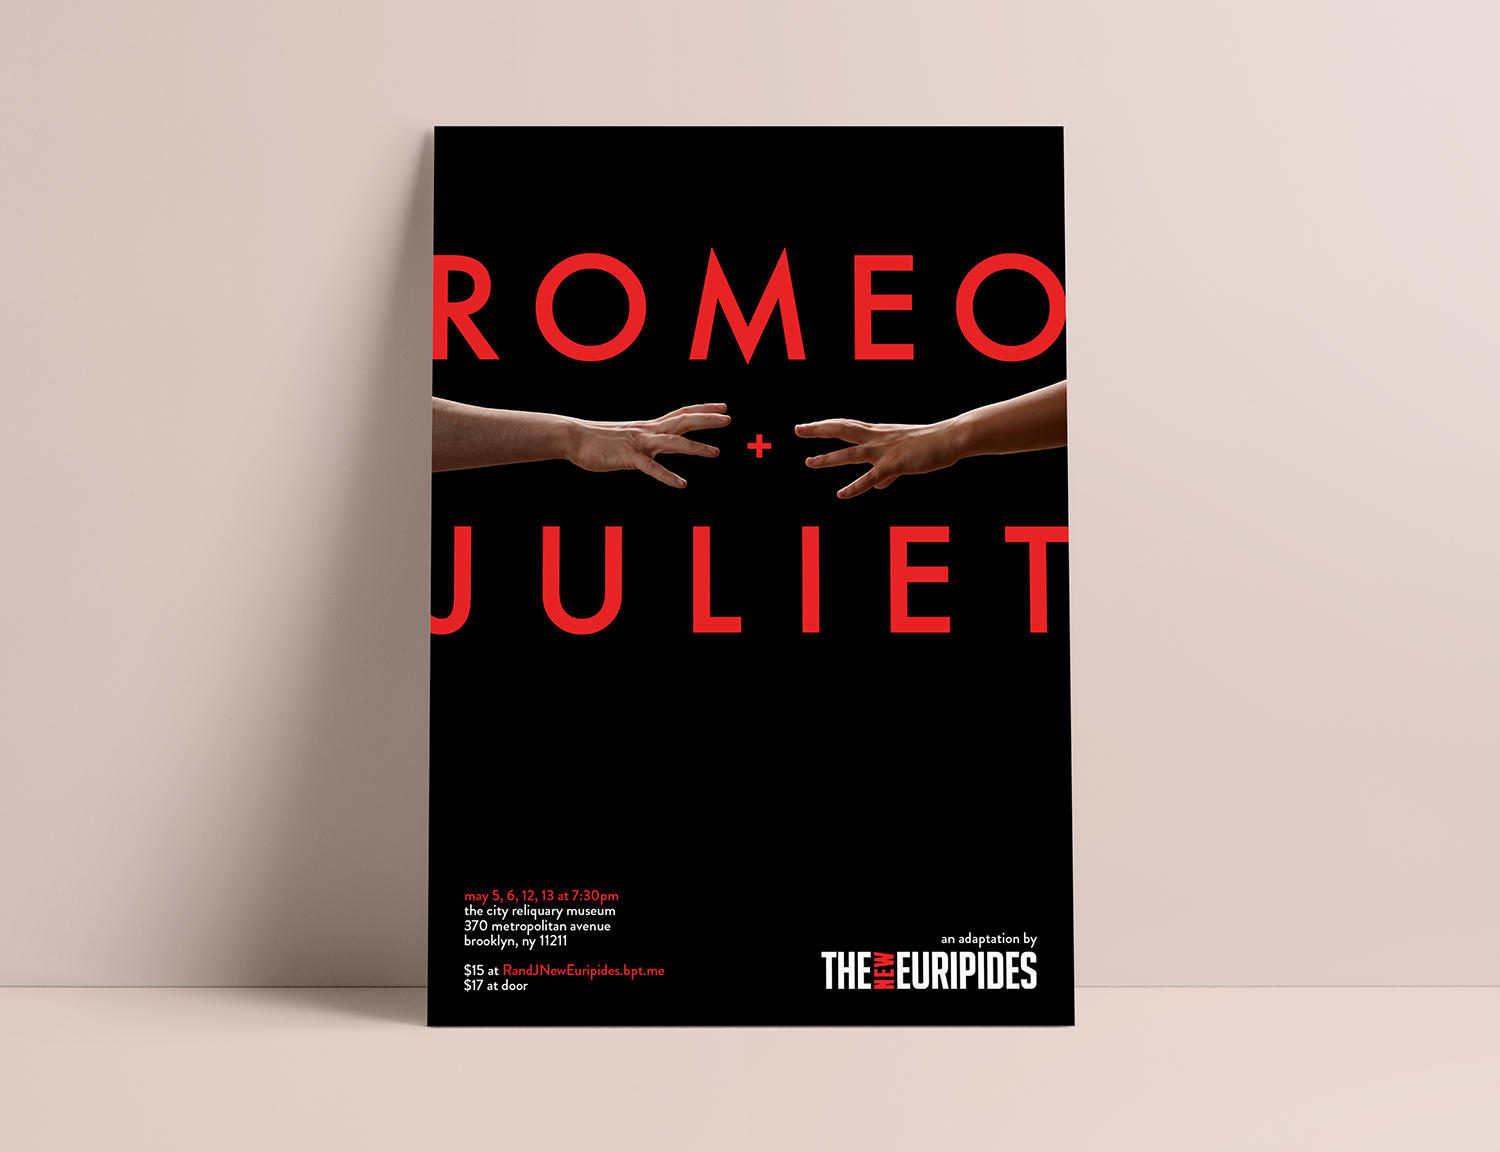 'Romeo + Juliet' at the   The City Reliquary Museum in Brooklyn, NY